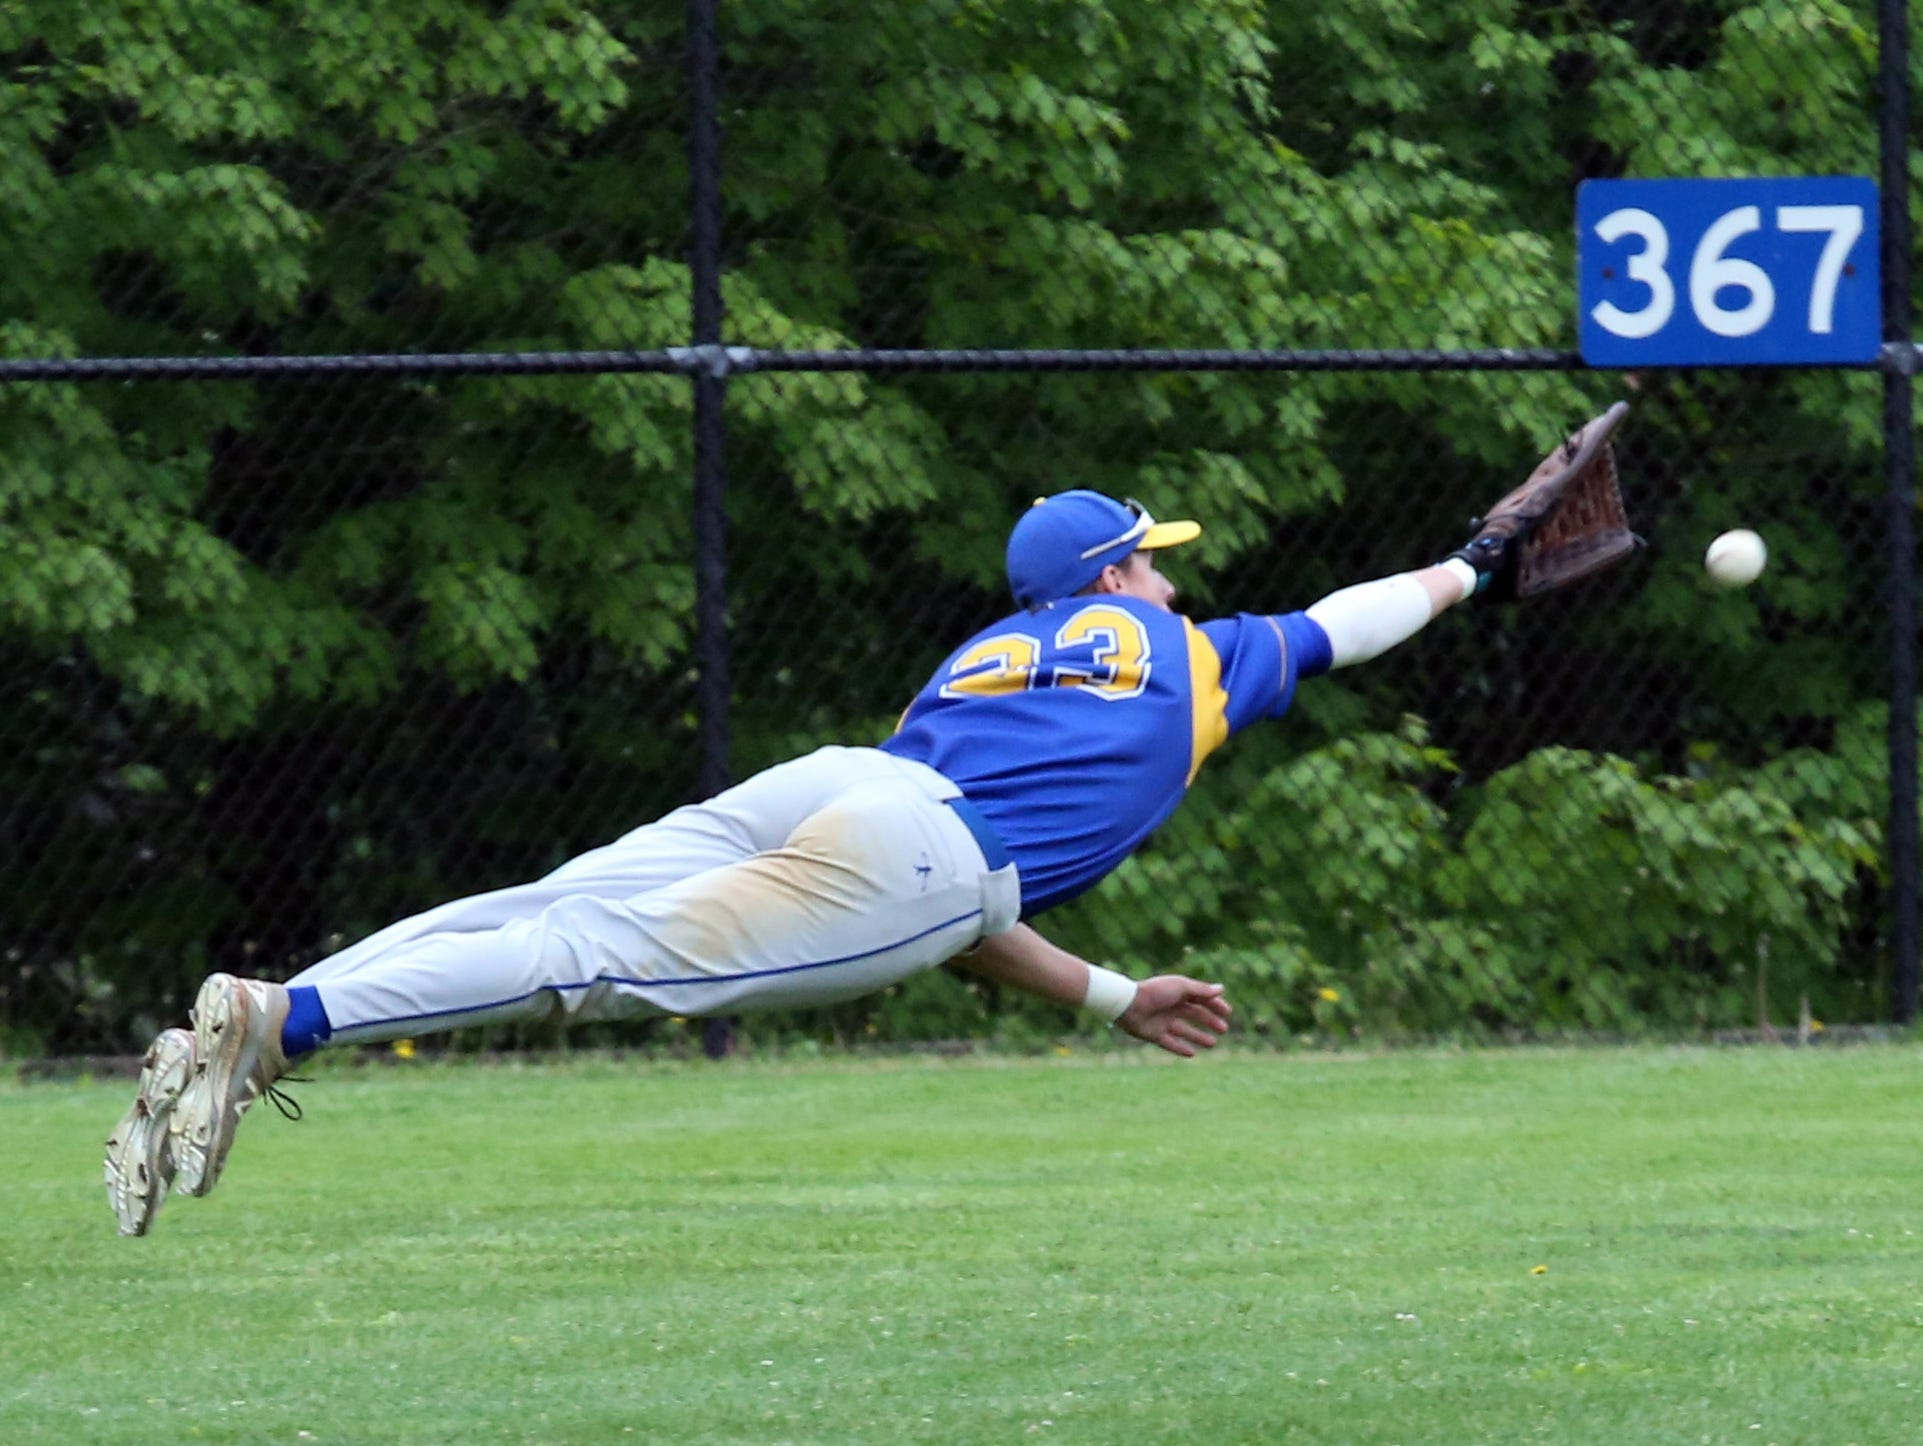 Ardsley's Bobby Wooten can't grab the shot by Albertus Magnus' Frank Margiotta during their Class B game at Ardsley High School, May 21, 2016.